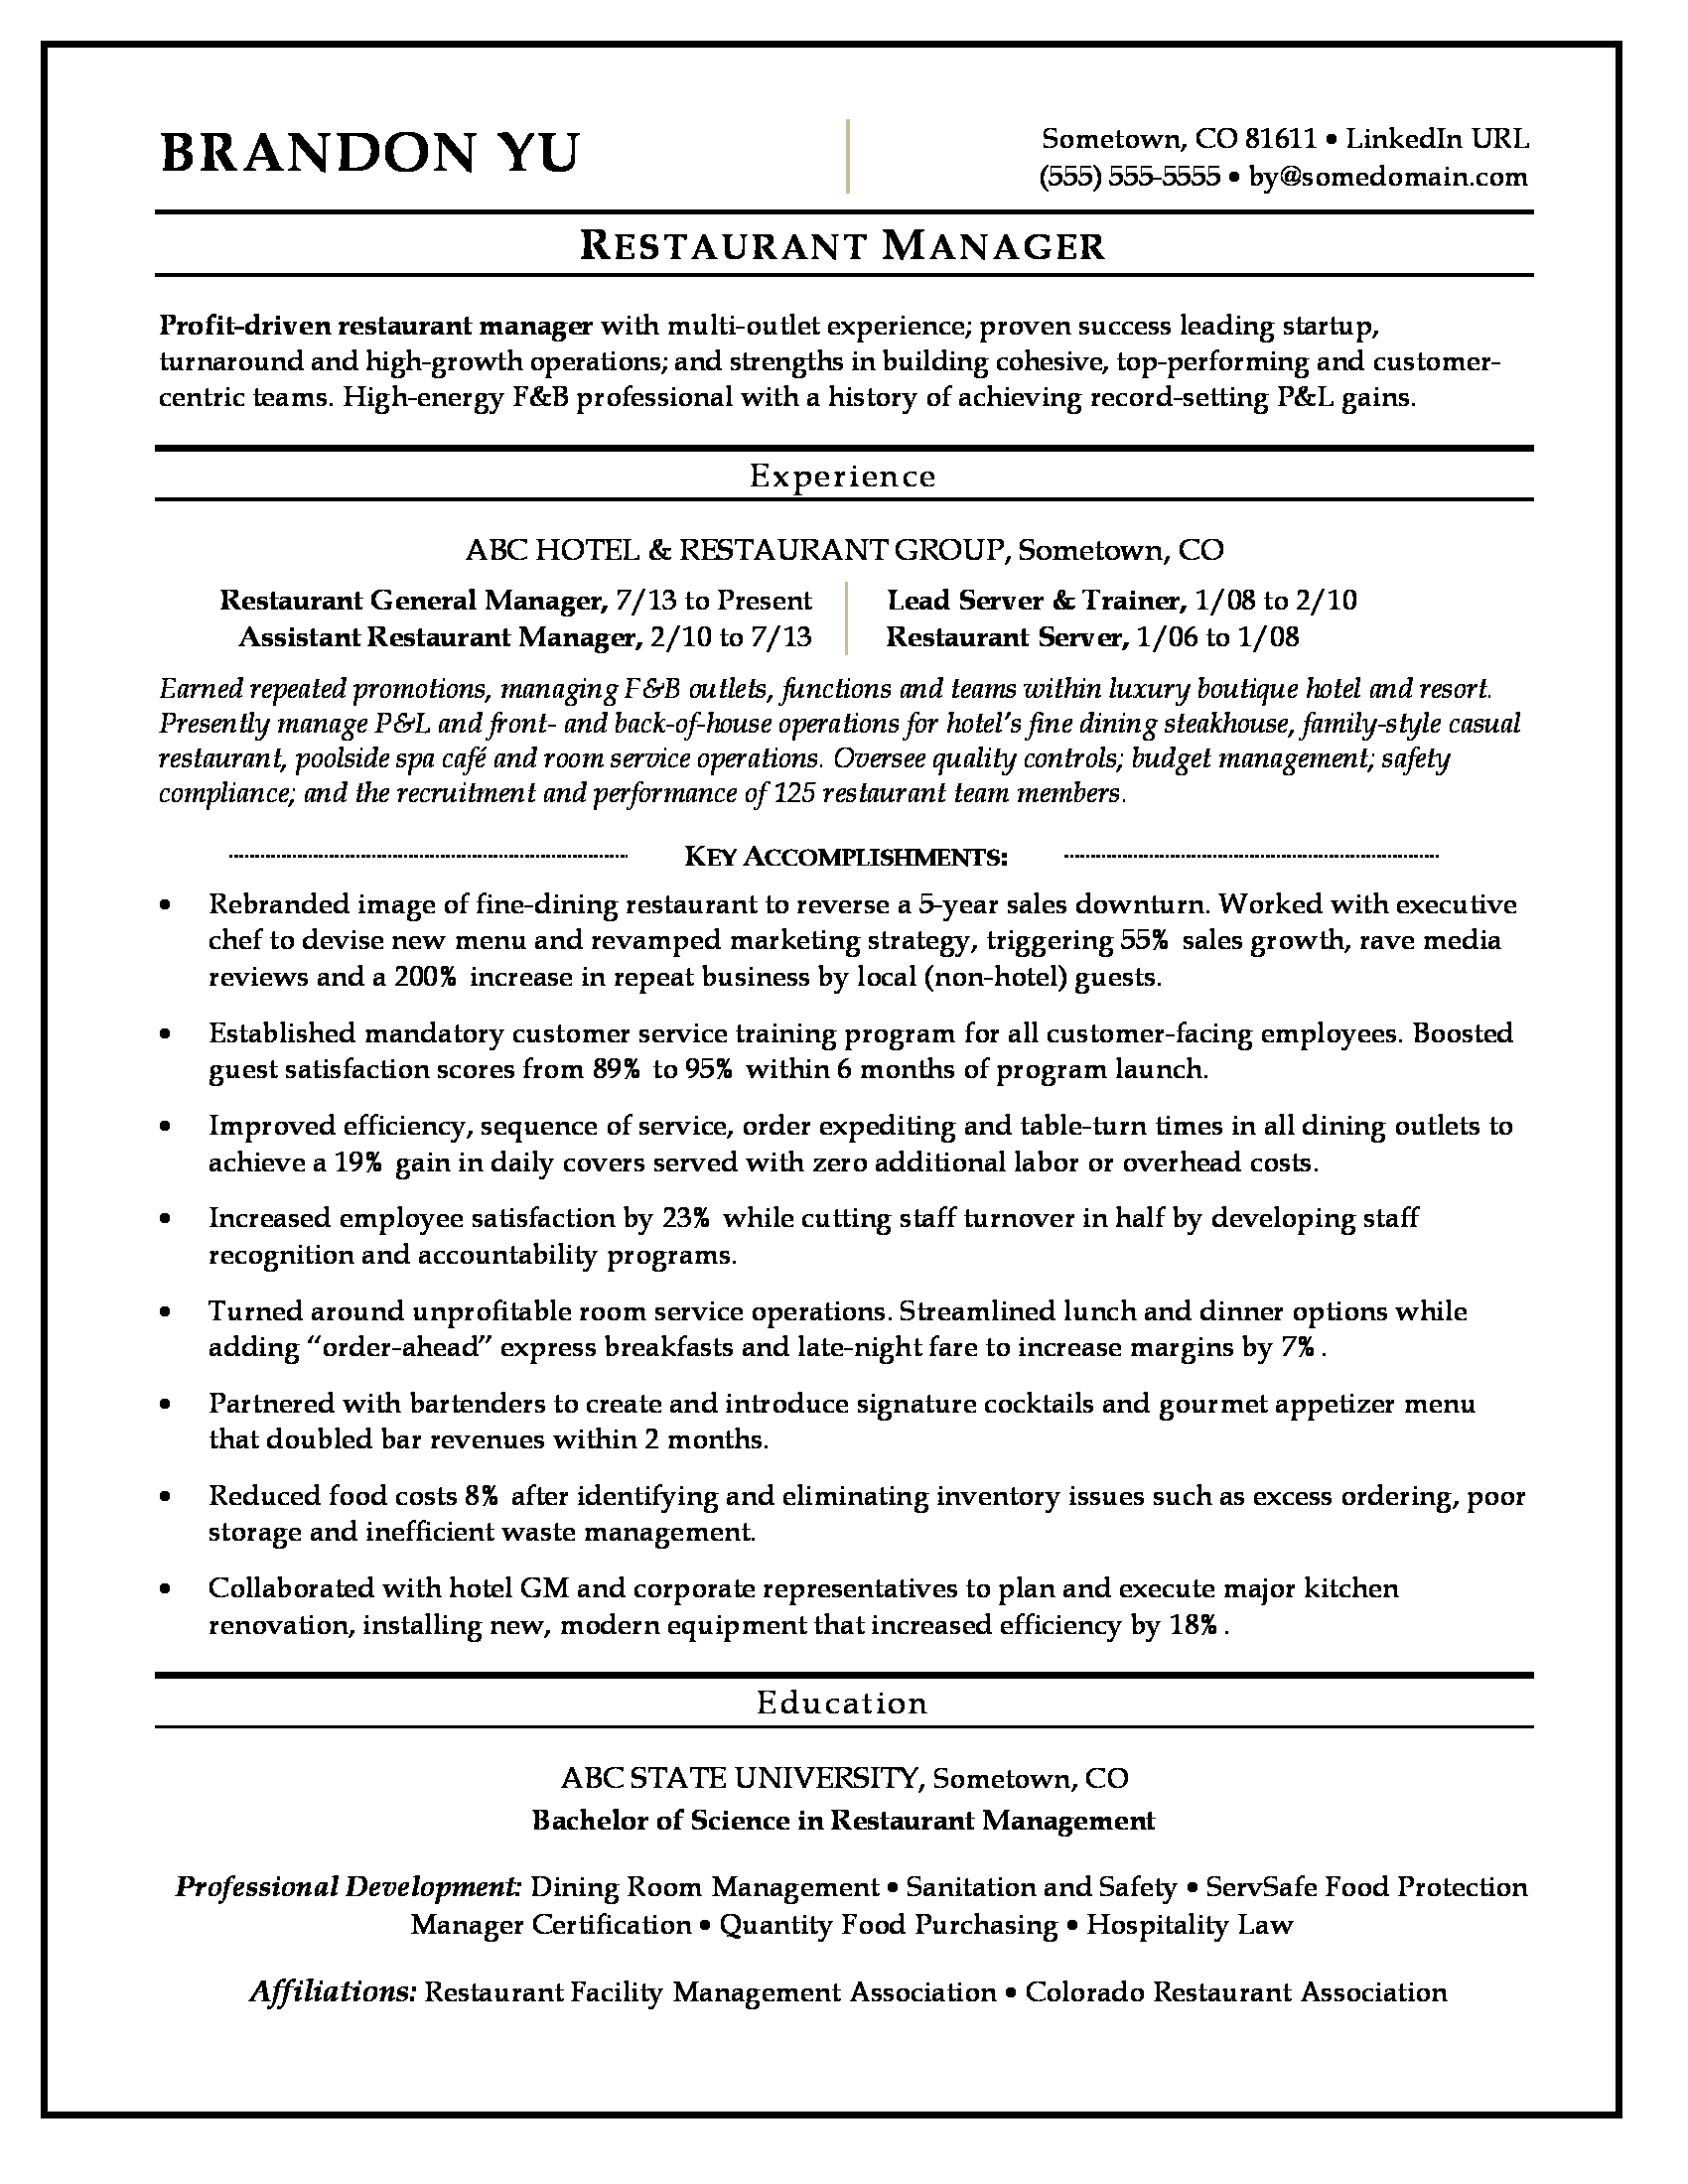 Restaurant Manager Resume Highlights - Success Stories